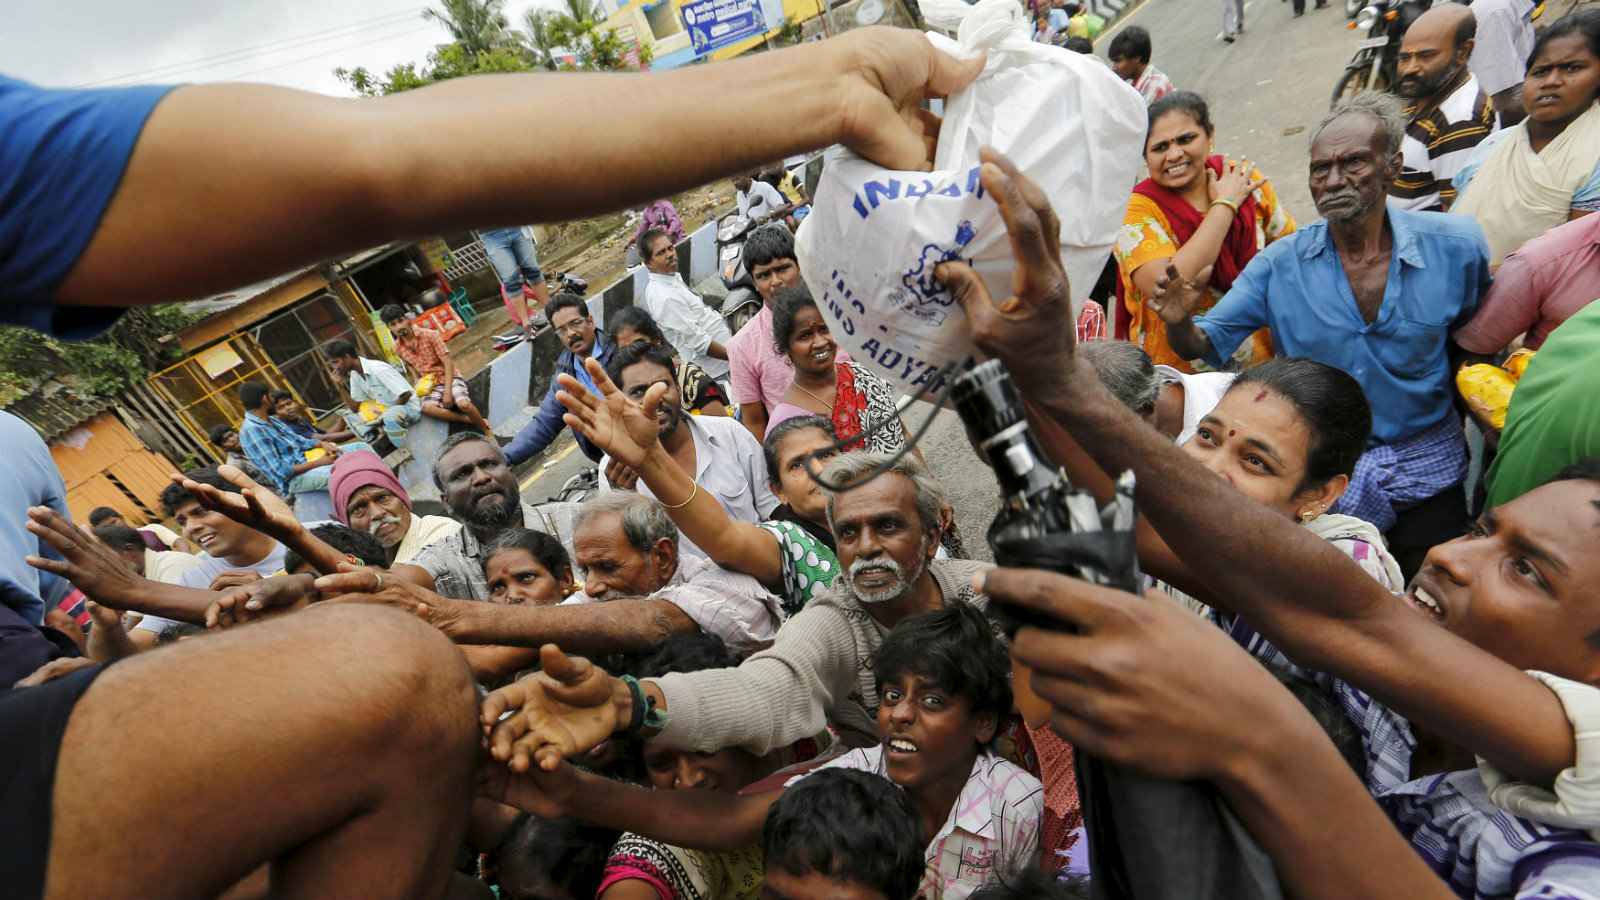 Flood-affected people raise their hands to receive free food being distributed by Indian Navy personnel in Chennai, India, December 5, 2015.